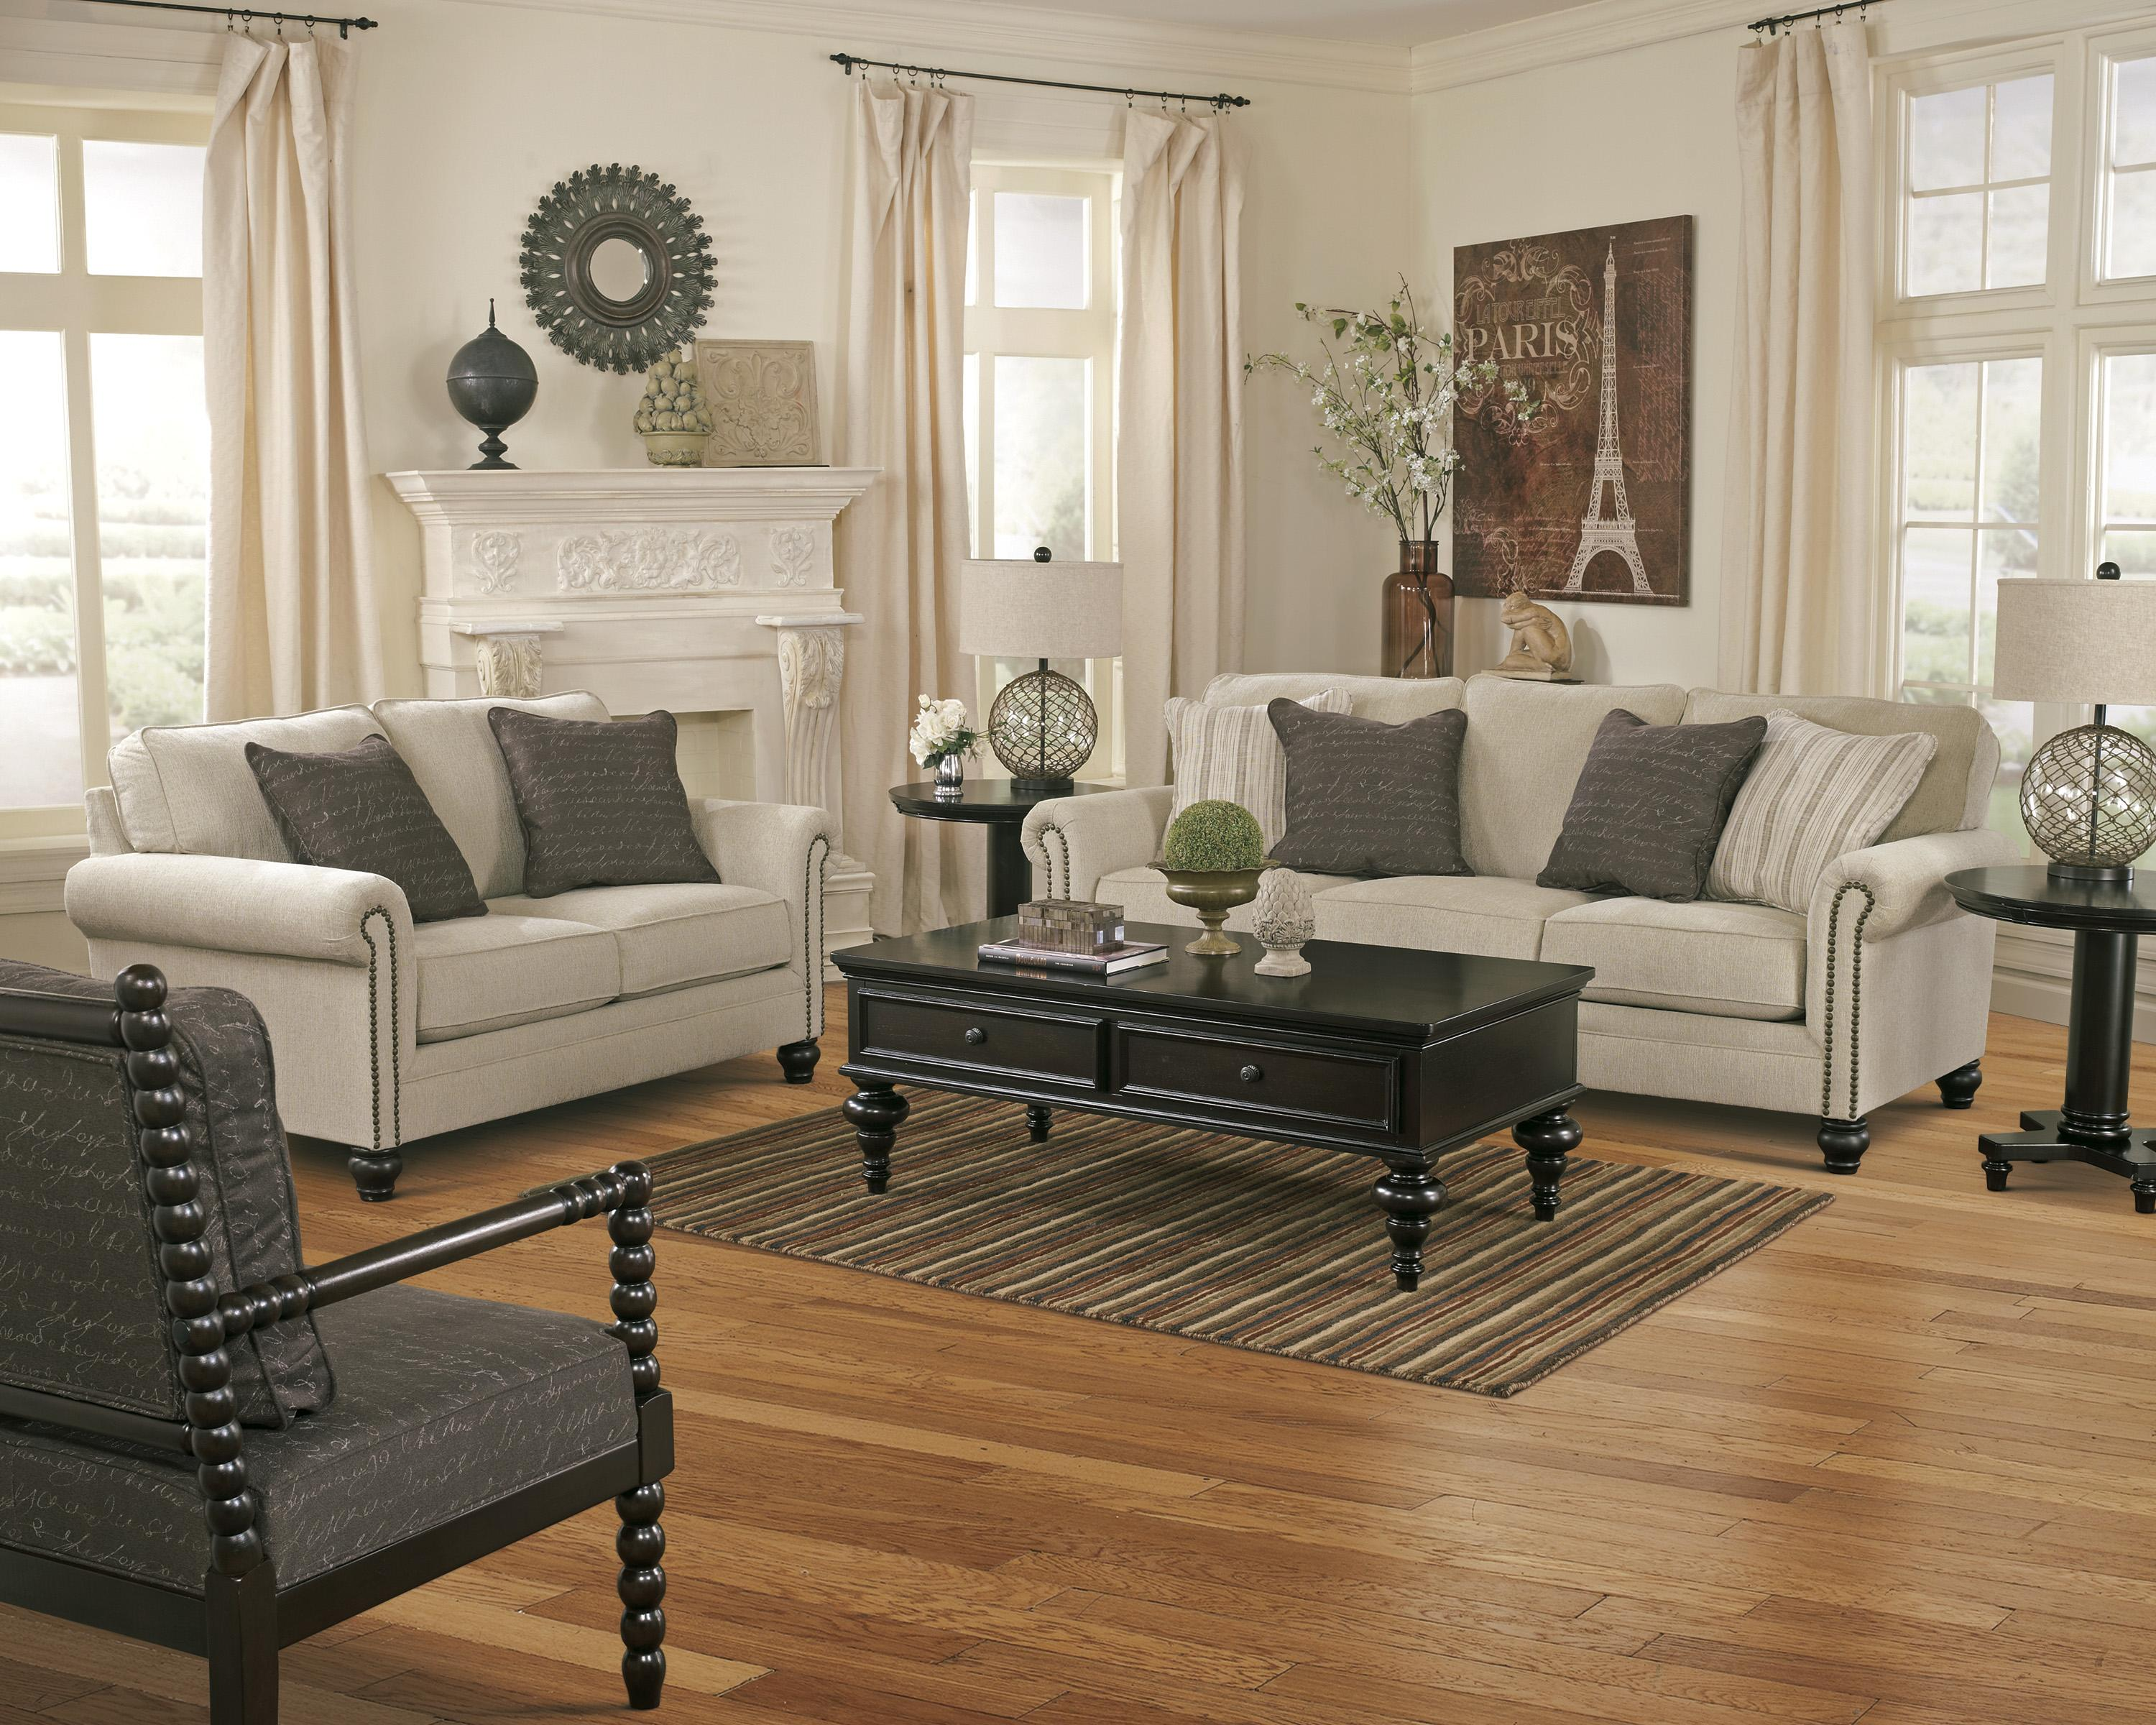 Signature Design by Ashley Milari - Linen Stationary Living Room Group - Item Number: 13000 Living Room Group 5